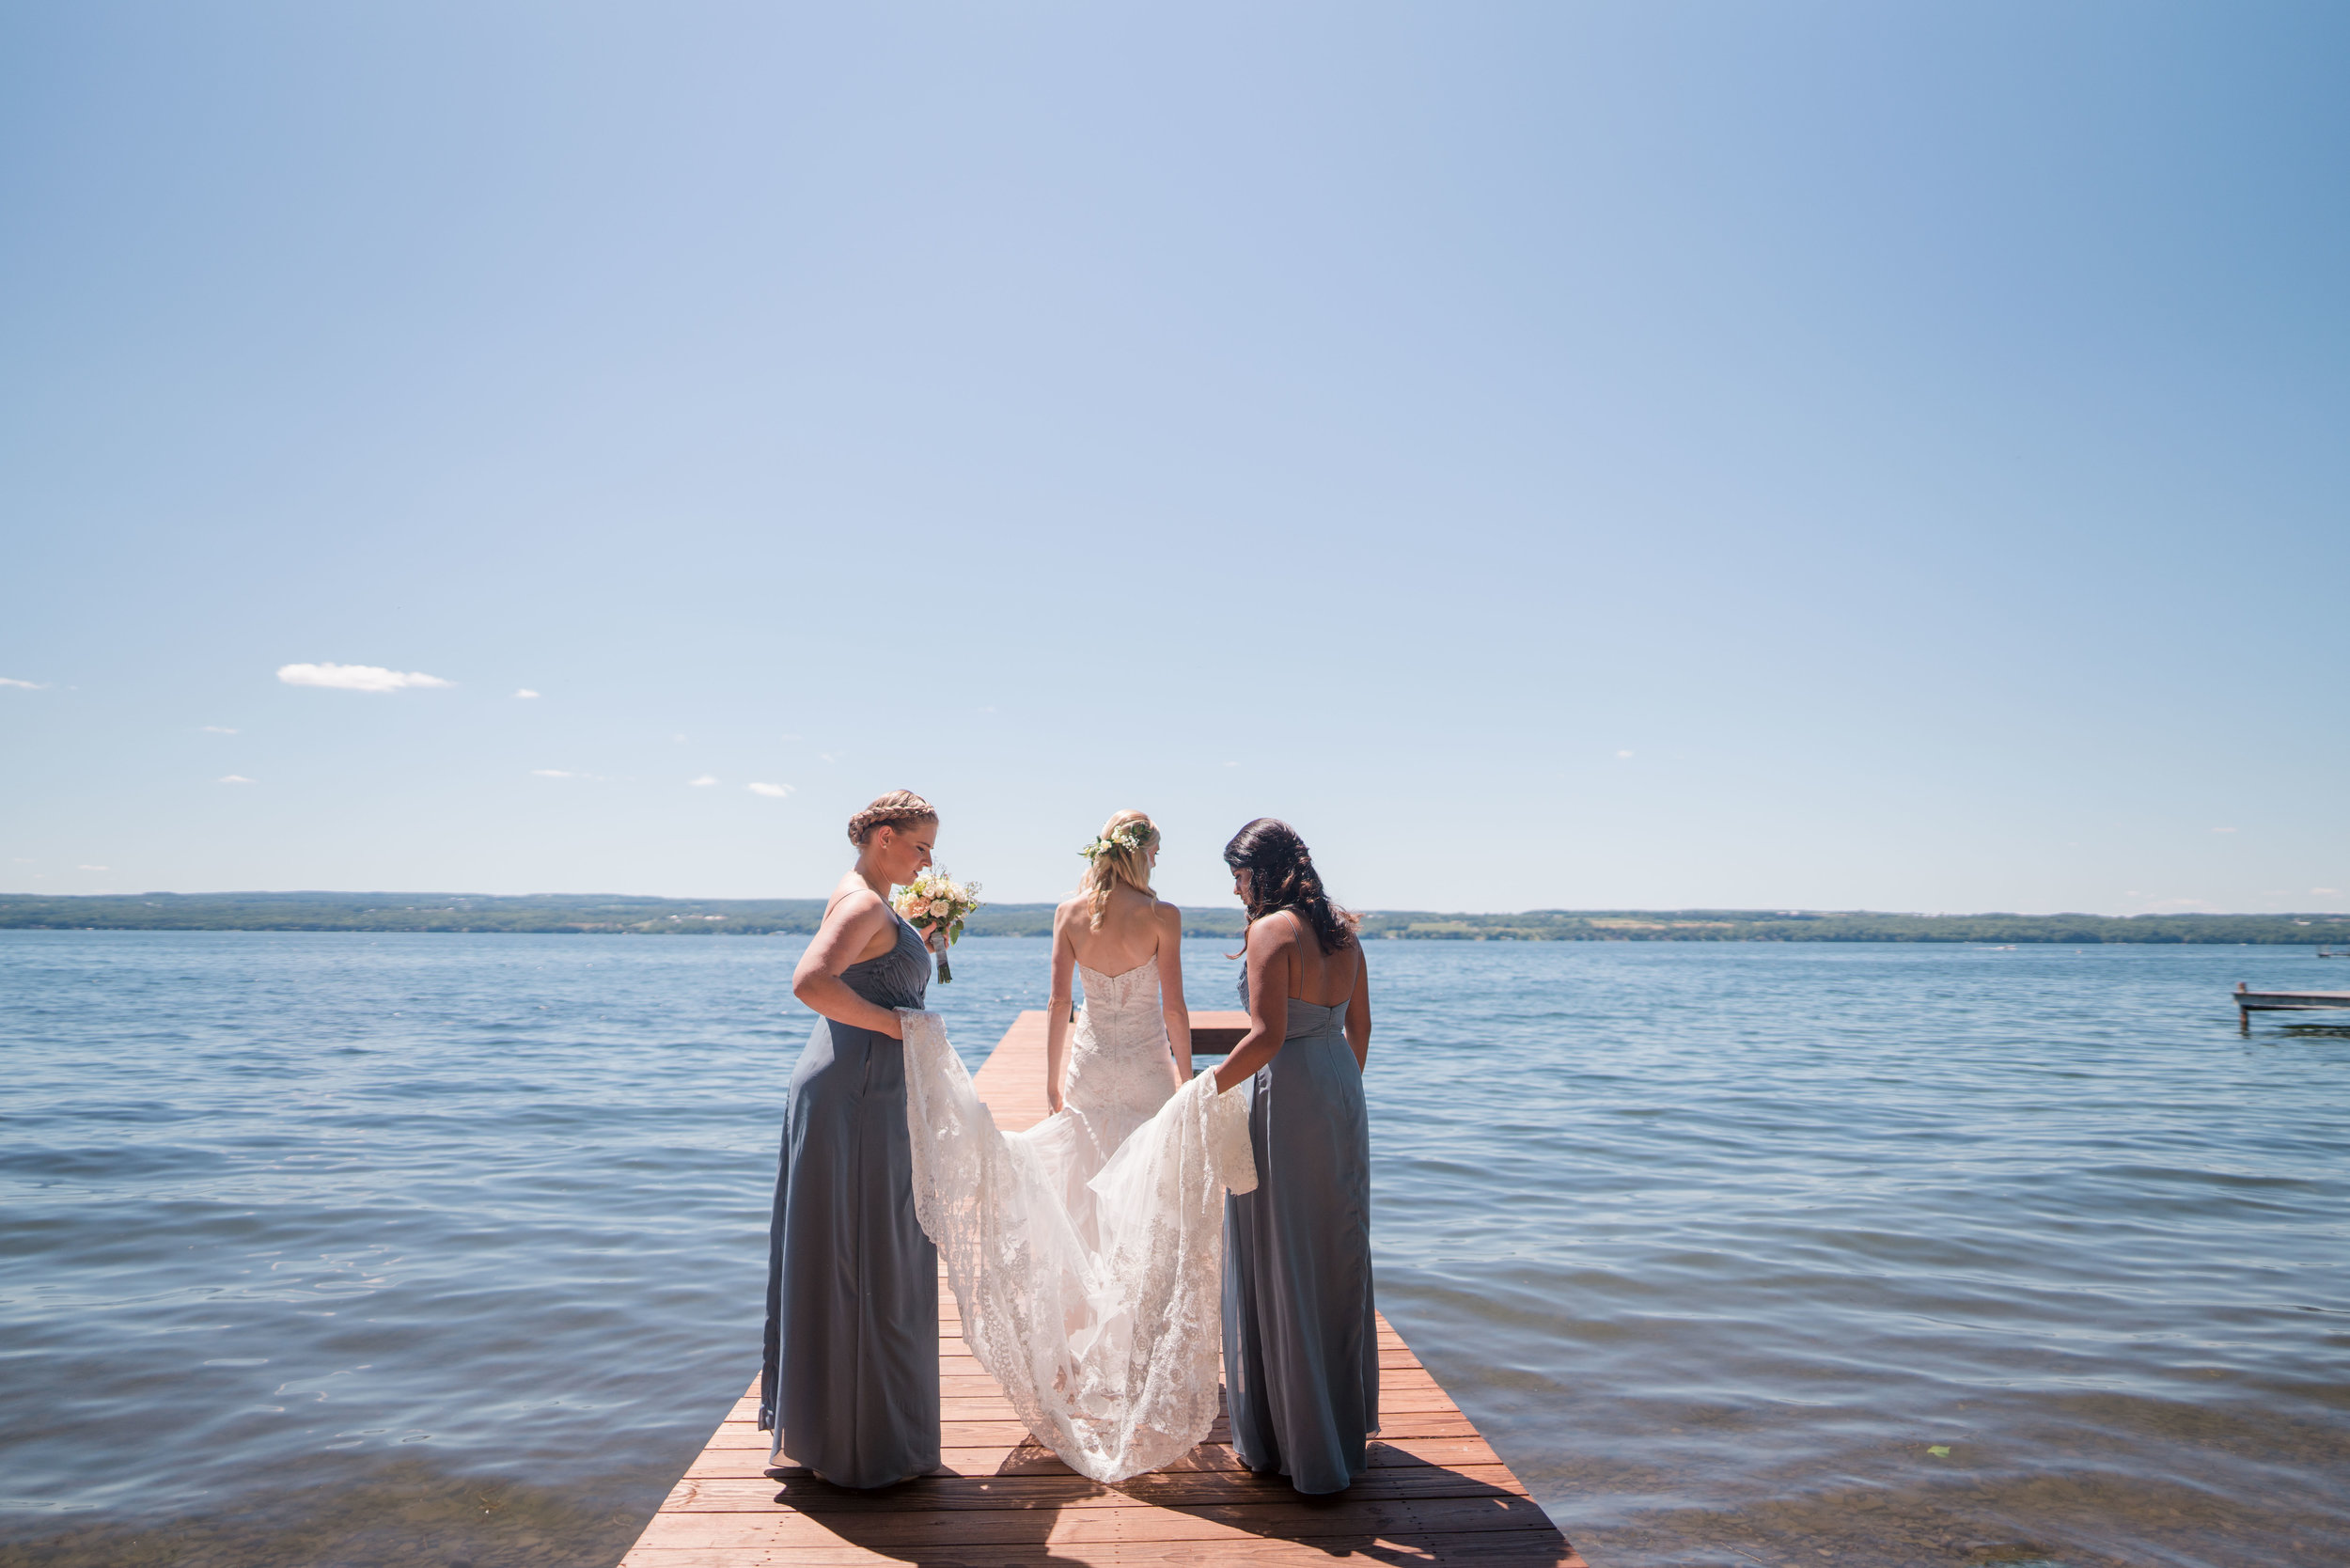 Wedding Photography at Wagner Vineyards Ginny Lee Cafe Finger Lakes by Stefan Ludwig Photography-18.jpg